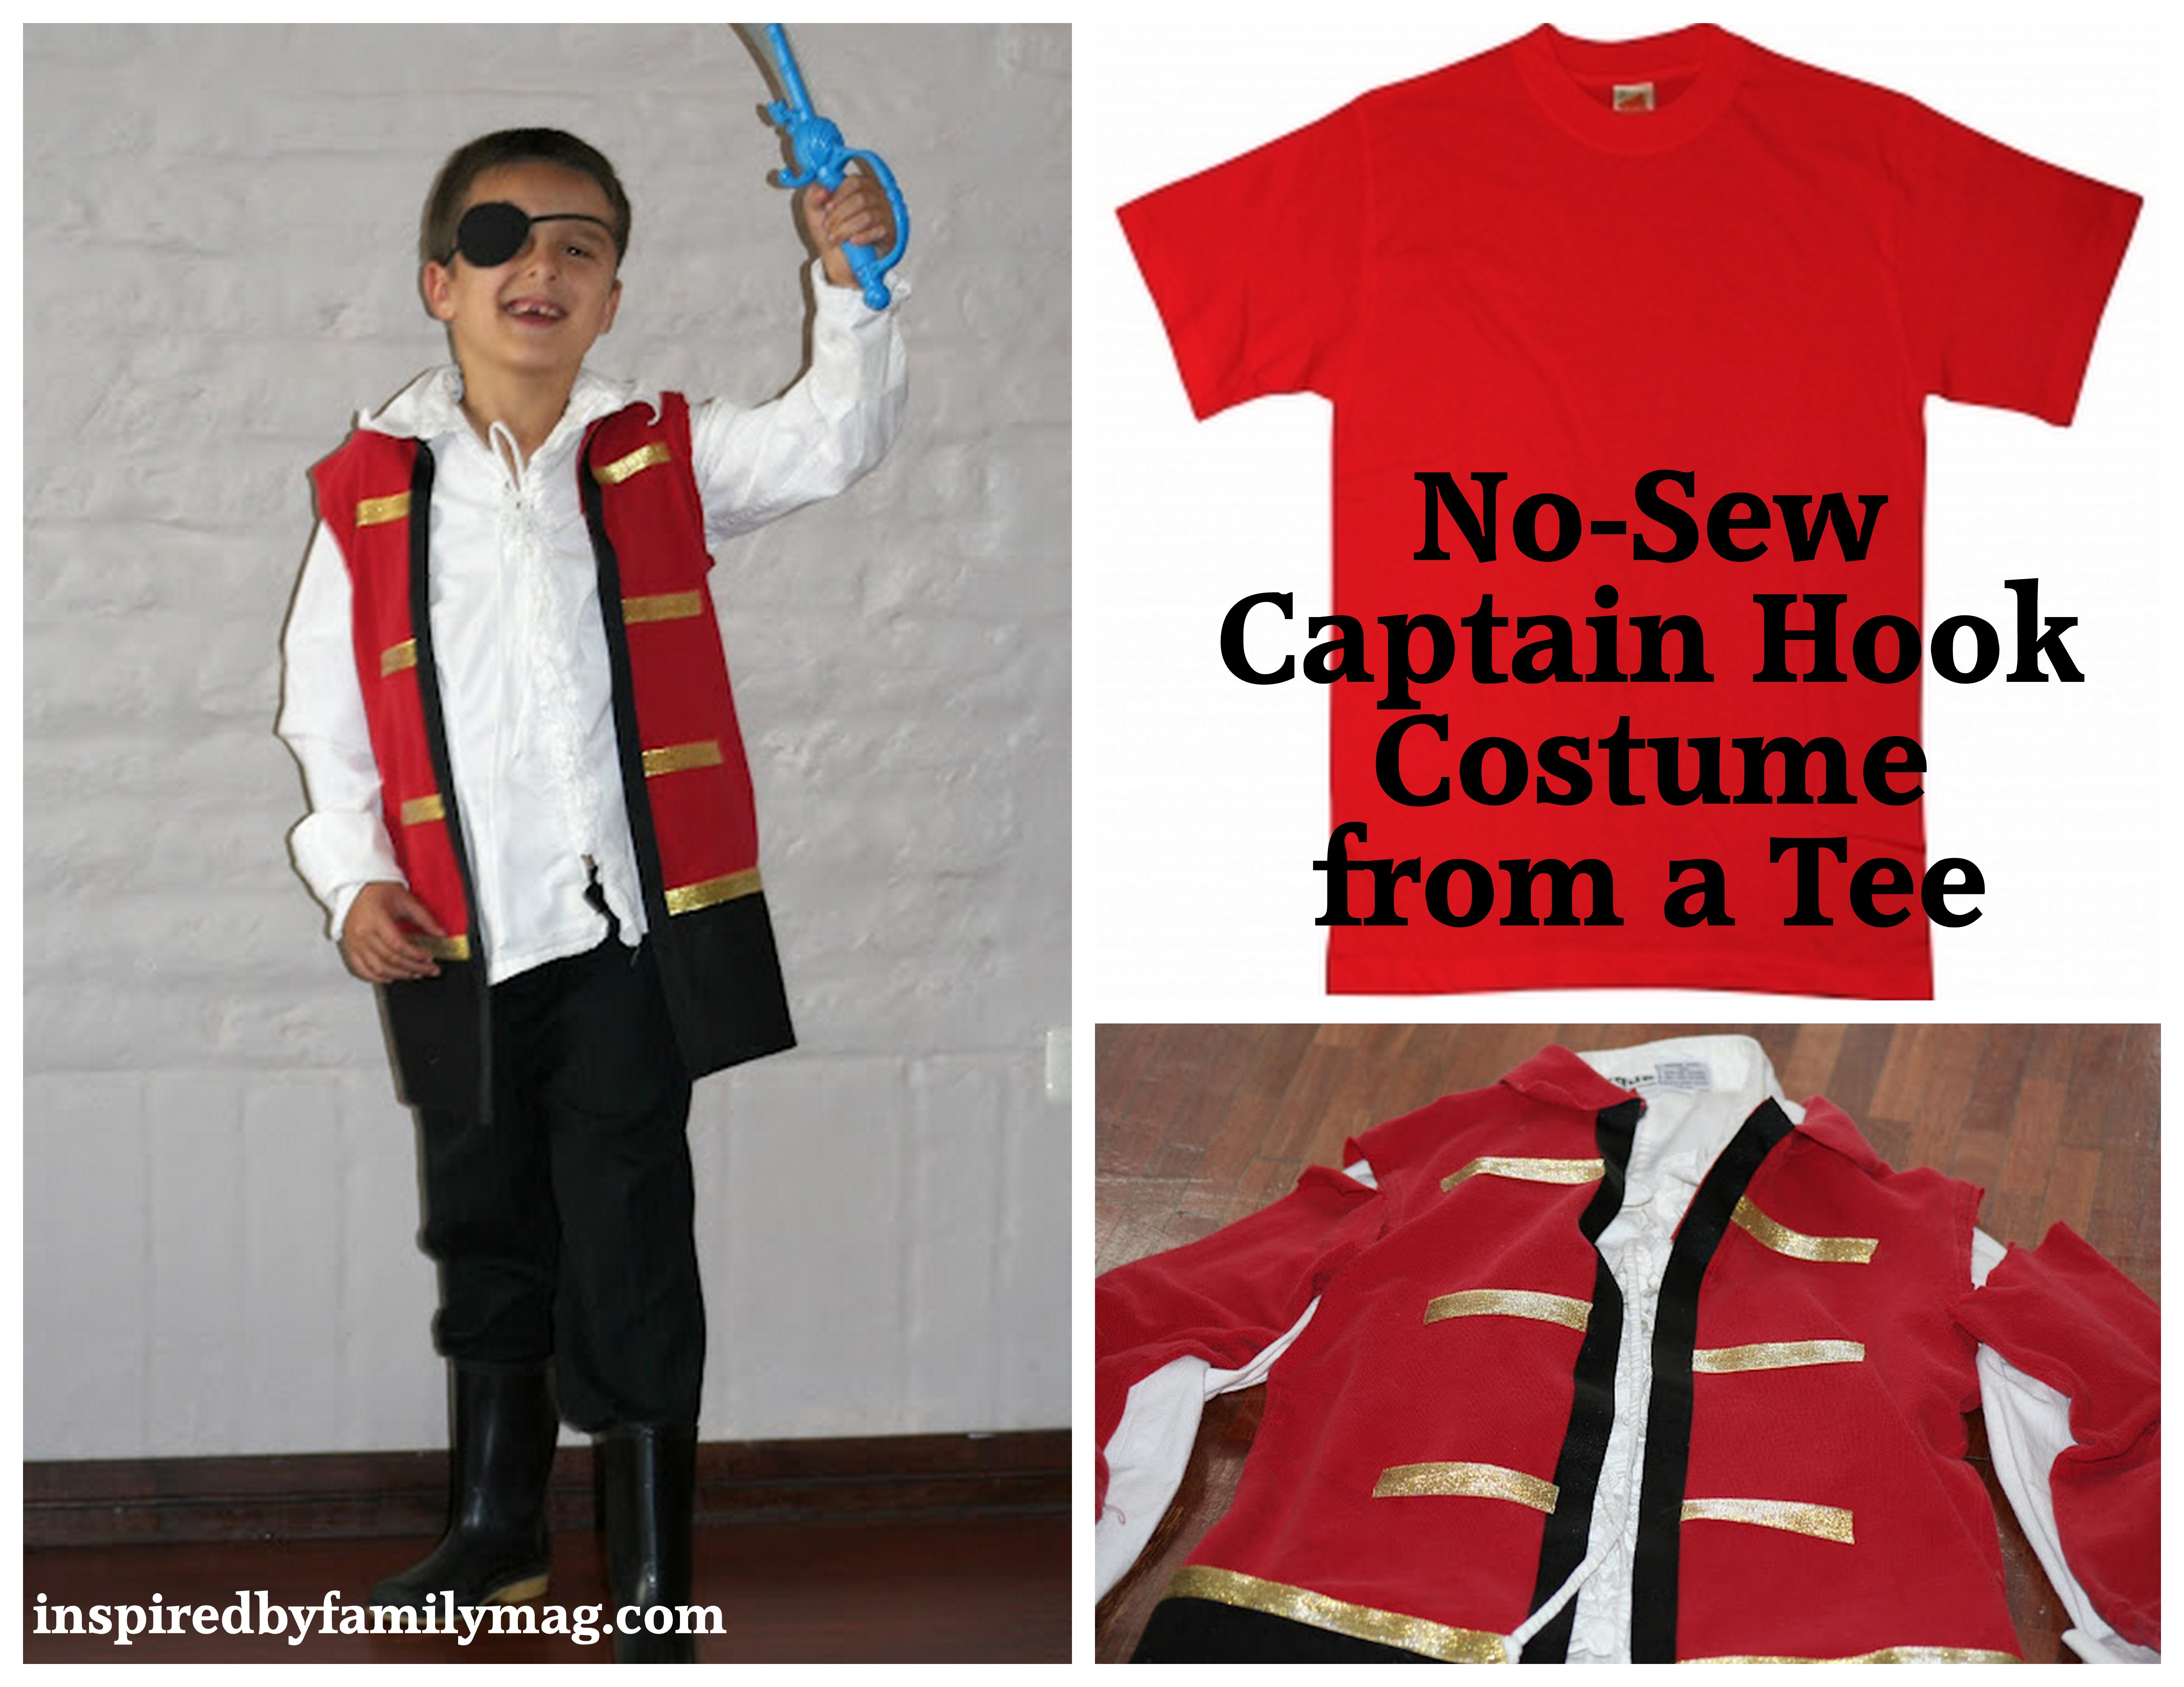 How To Make A No Sew Captain Hook Costume From A T Shirt!